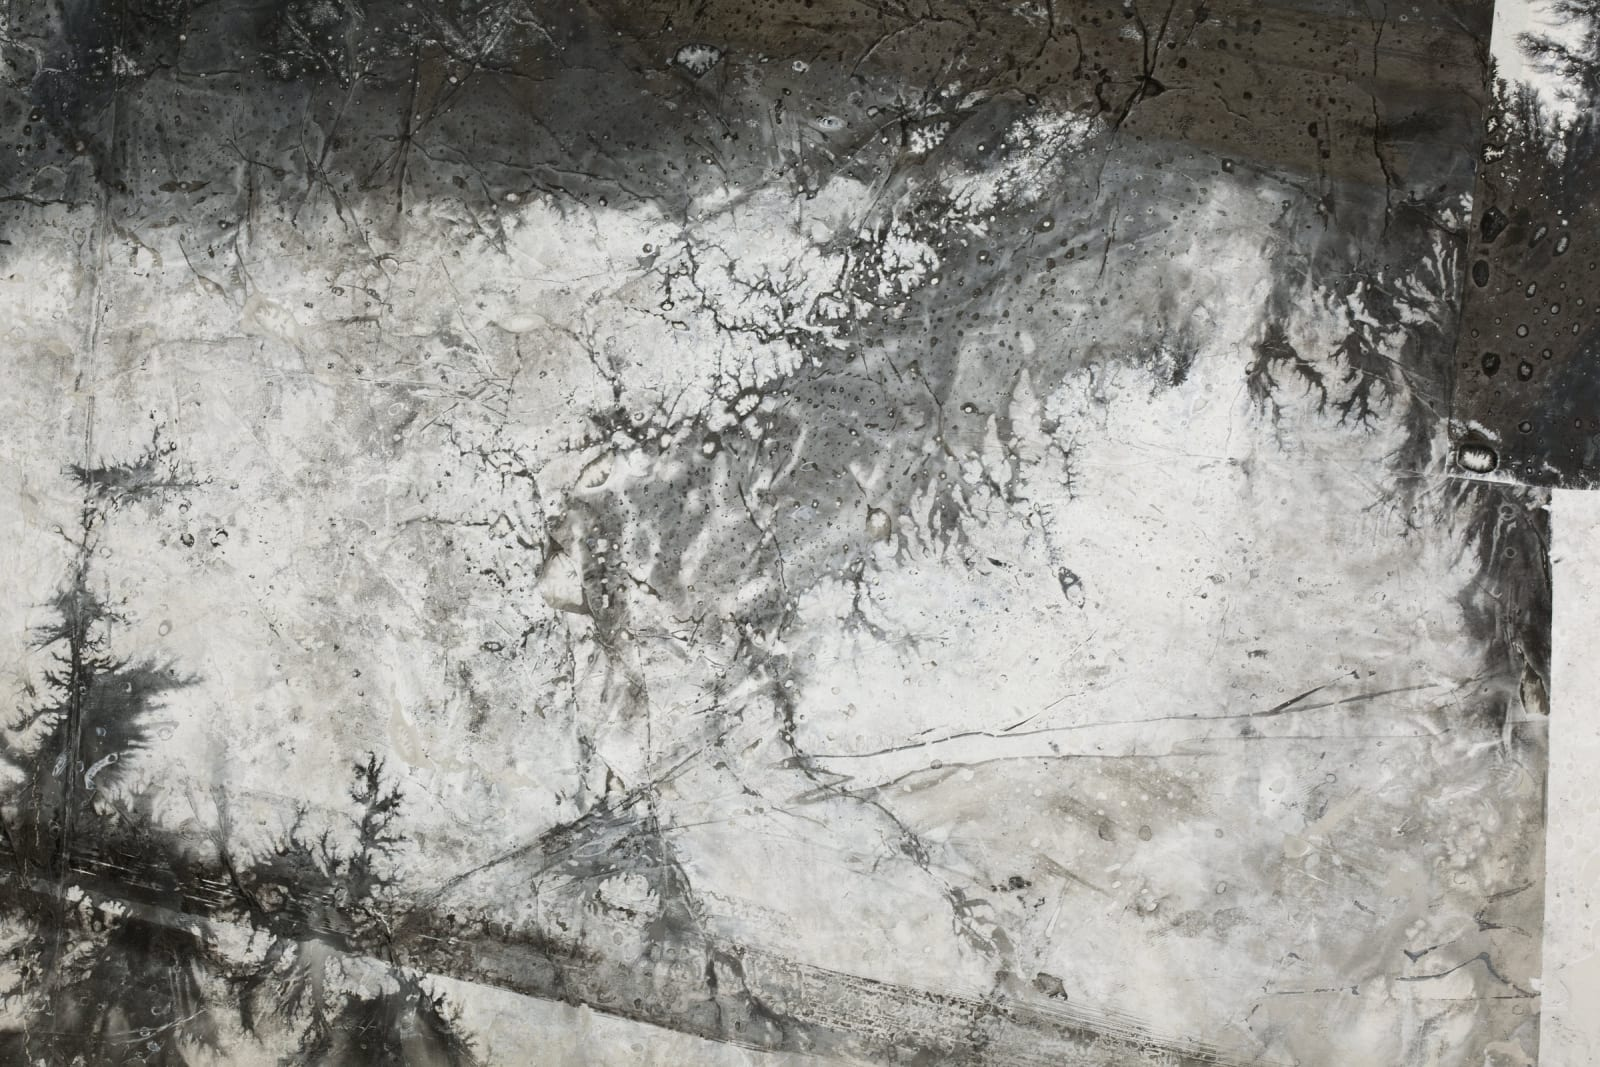 The Removal of Land 移动地带 detail, 2015, Ink, acrylic, xuan paper 墨 丙烯 宣纸, 276 x 198 cm